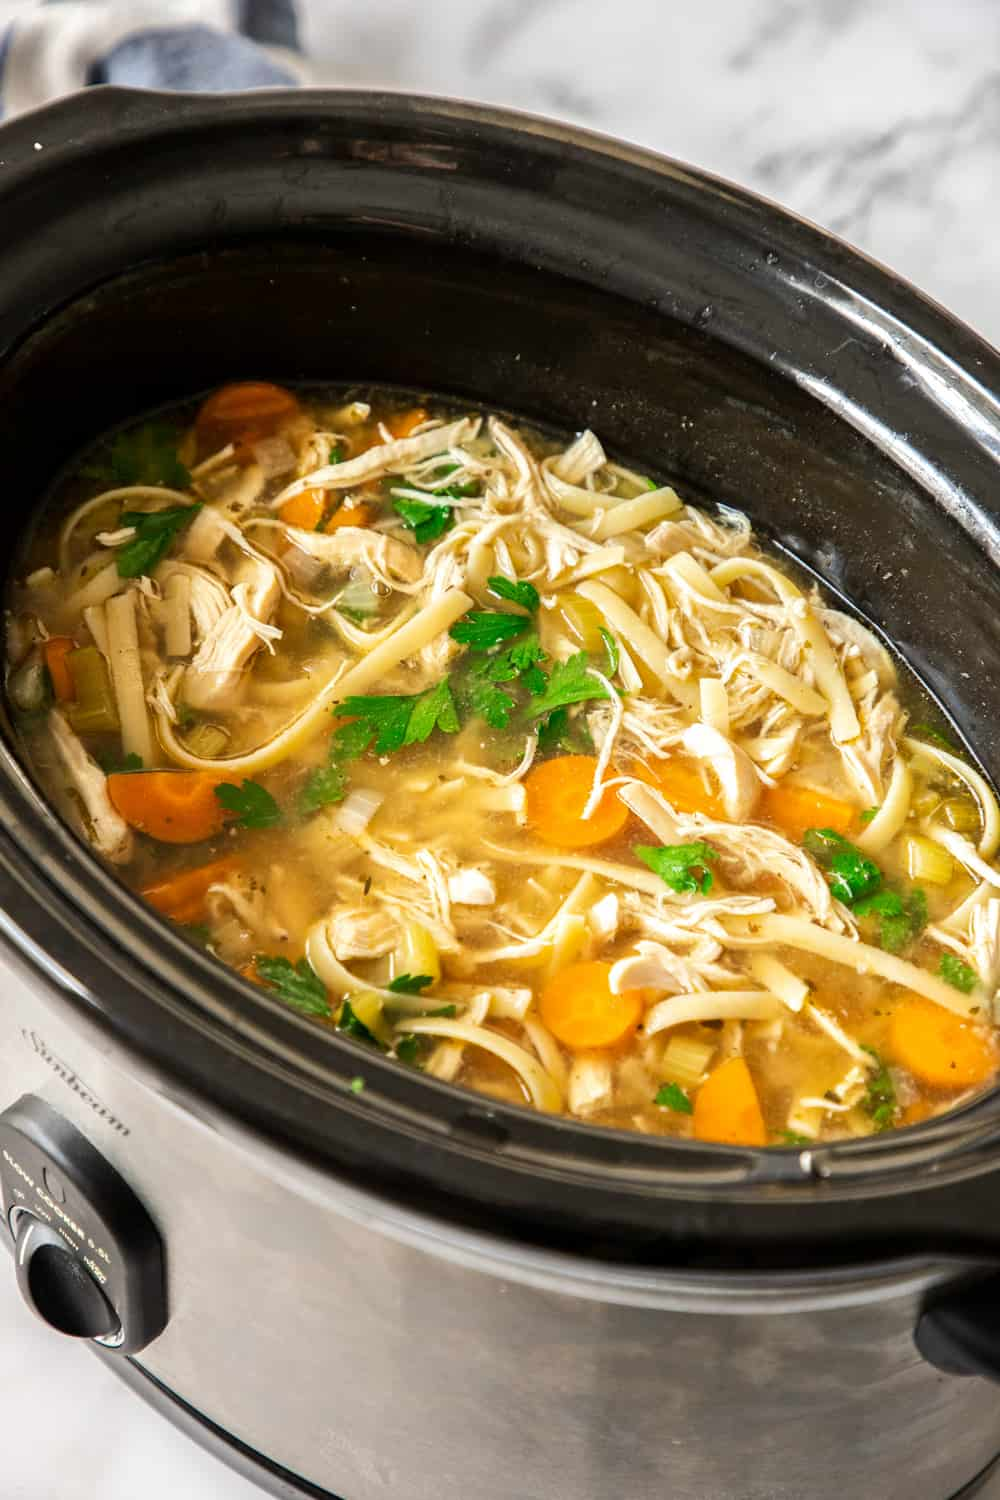 chicken noodle soup in the black bowl of a slow cooker